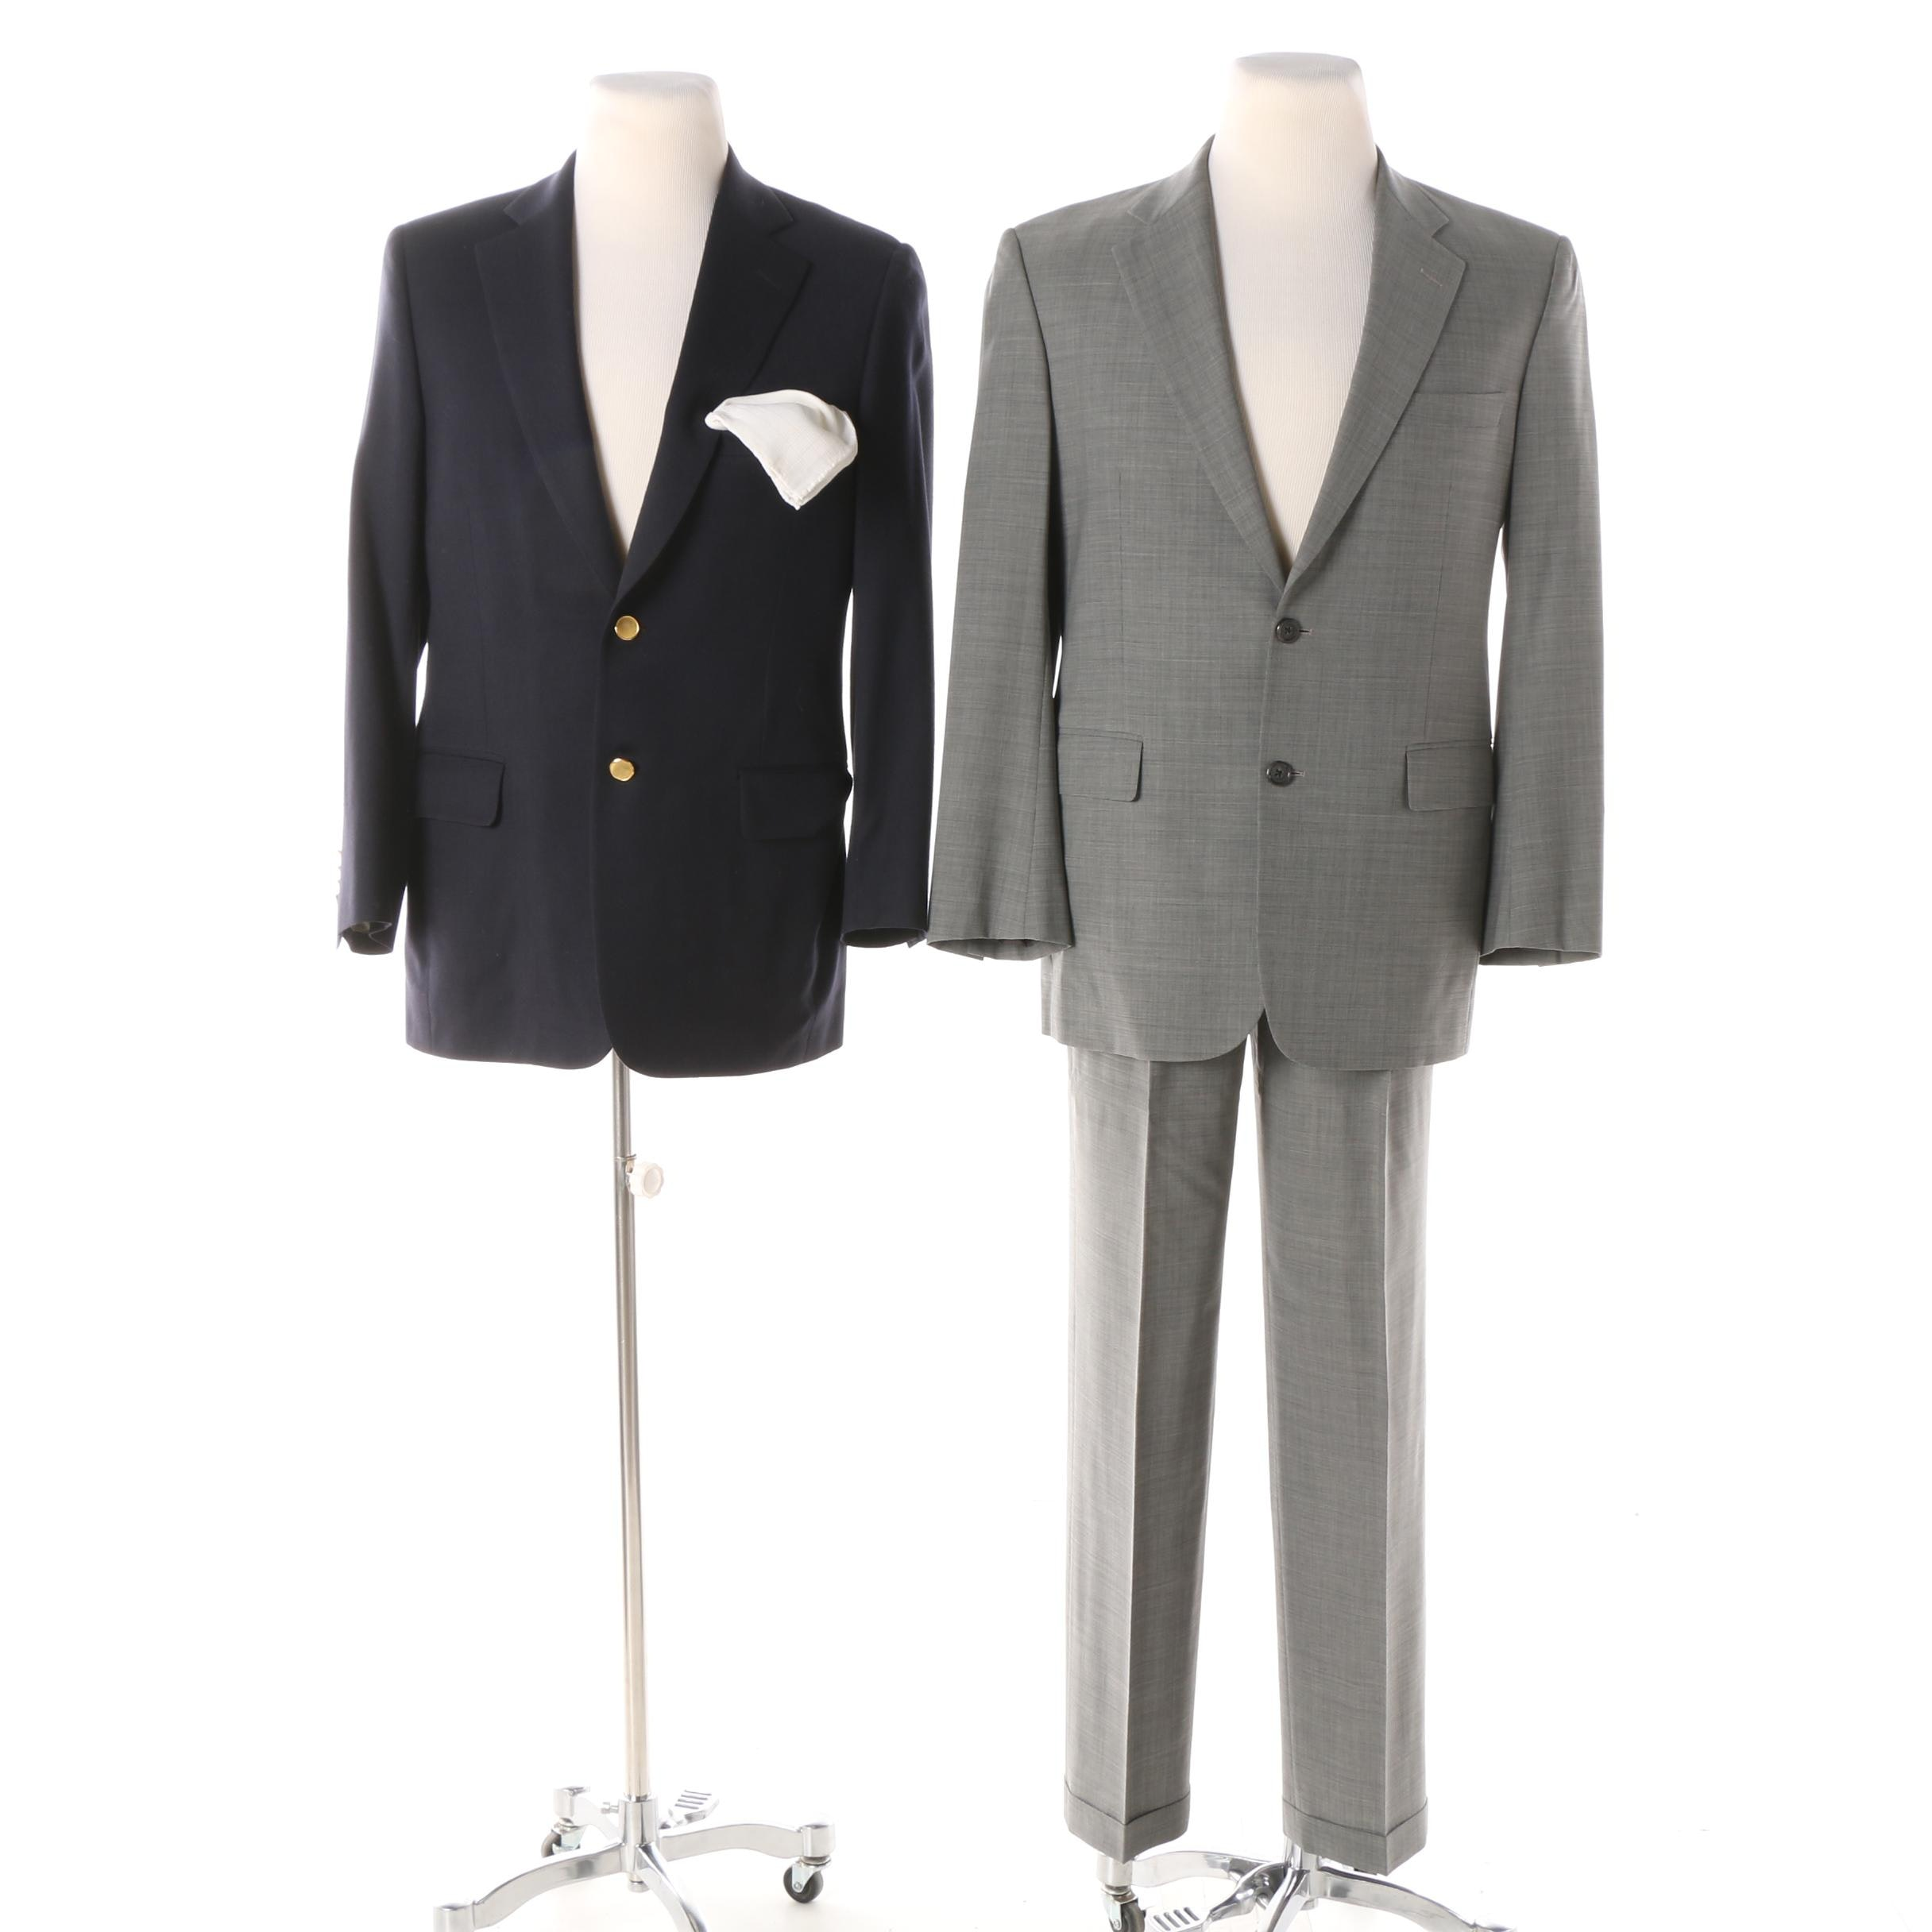 Brooks Brothers Two-Piece Suit and Paul Stuart Blazer with White Handkerchief